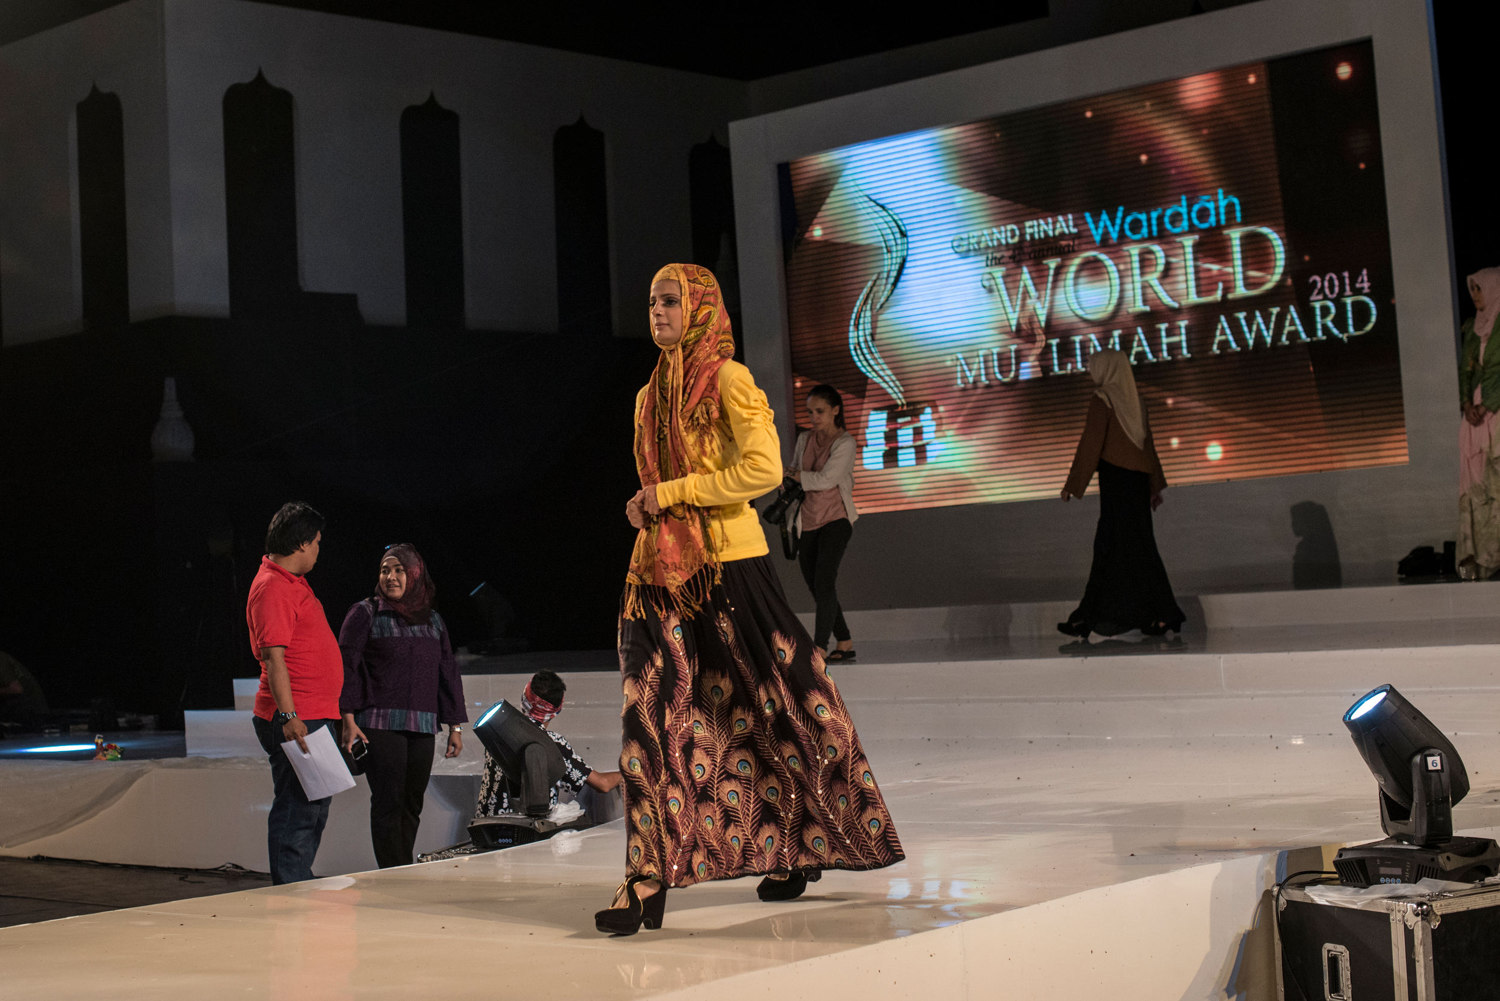 The finalists are given their shoes and begin rehearsals for the Grand Finale on November 20th, 2014 in Yogakarta, Indonesia. Pictured walking is Nazreen Ali.